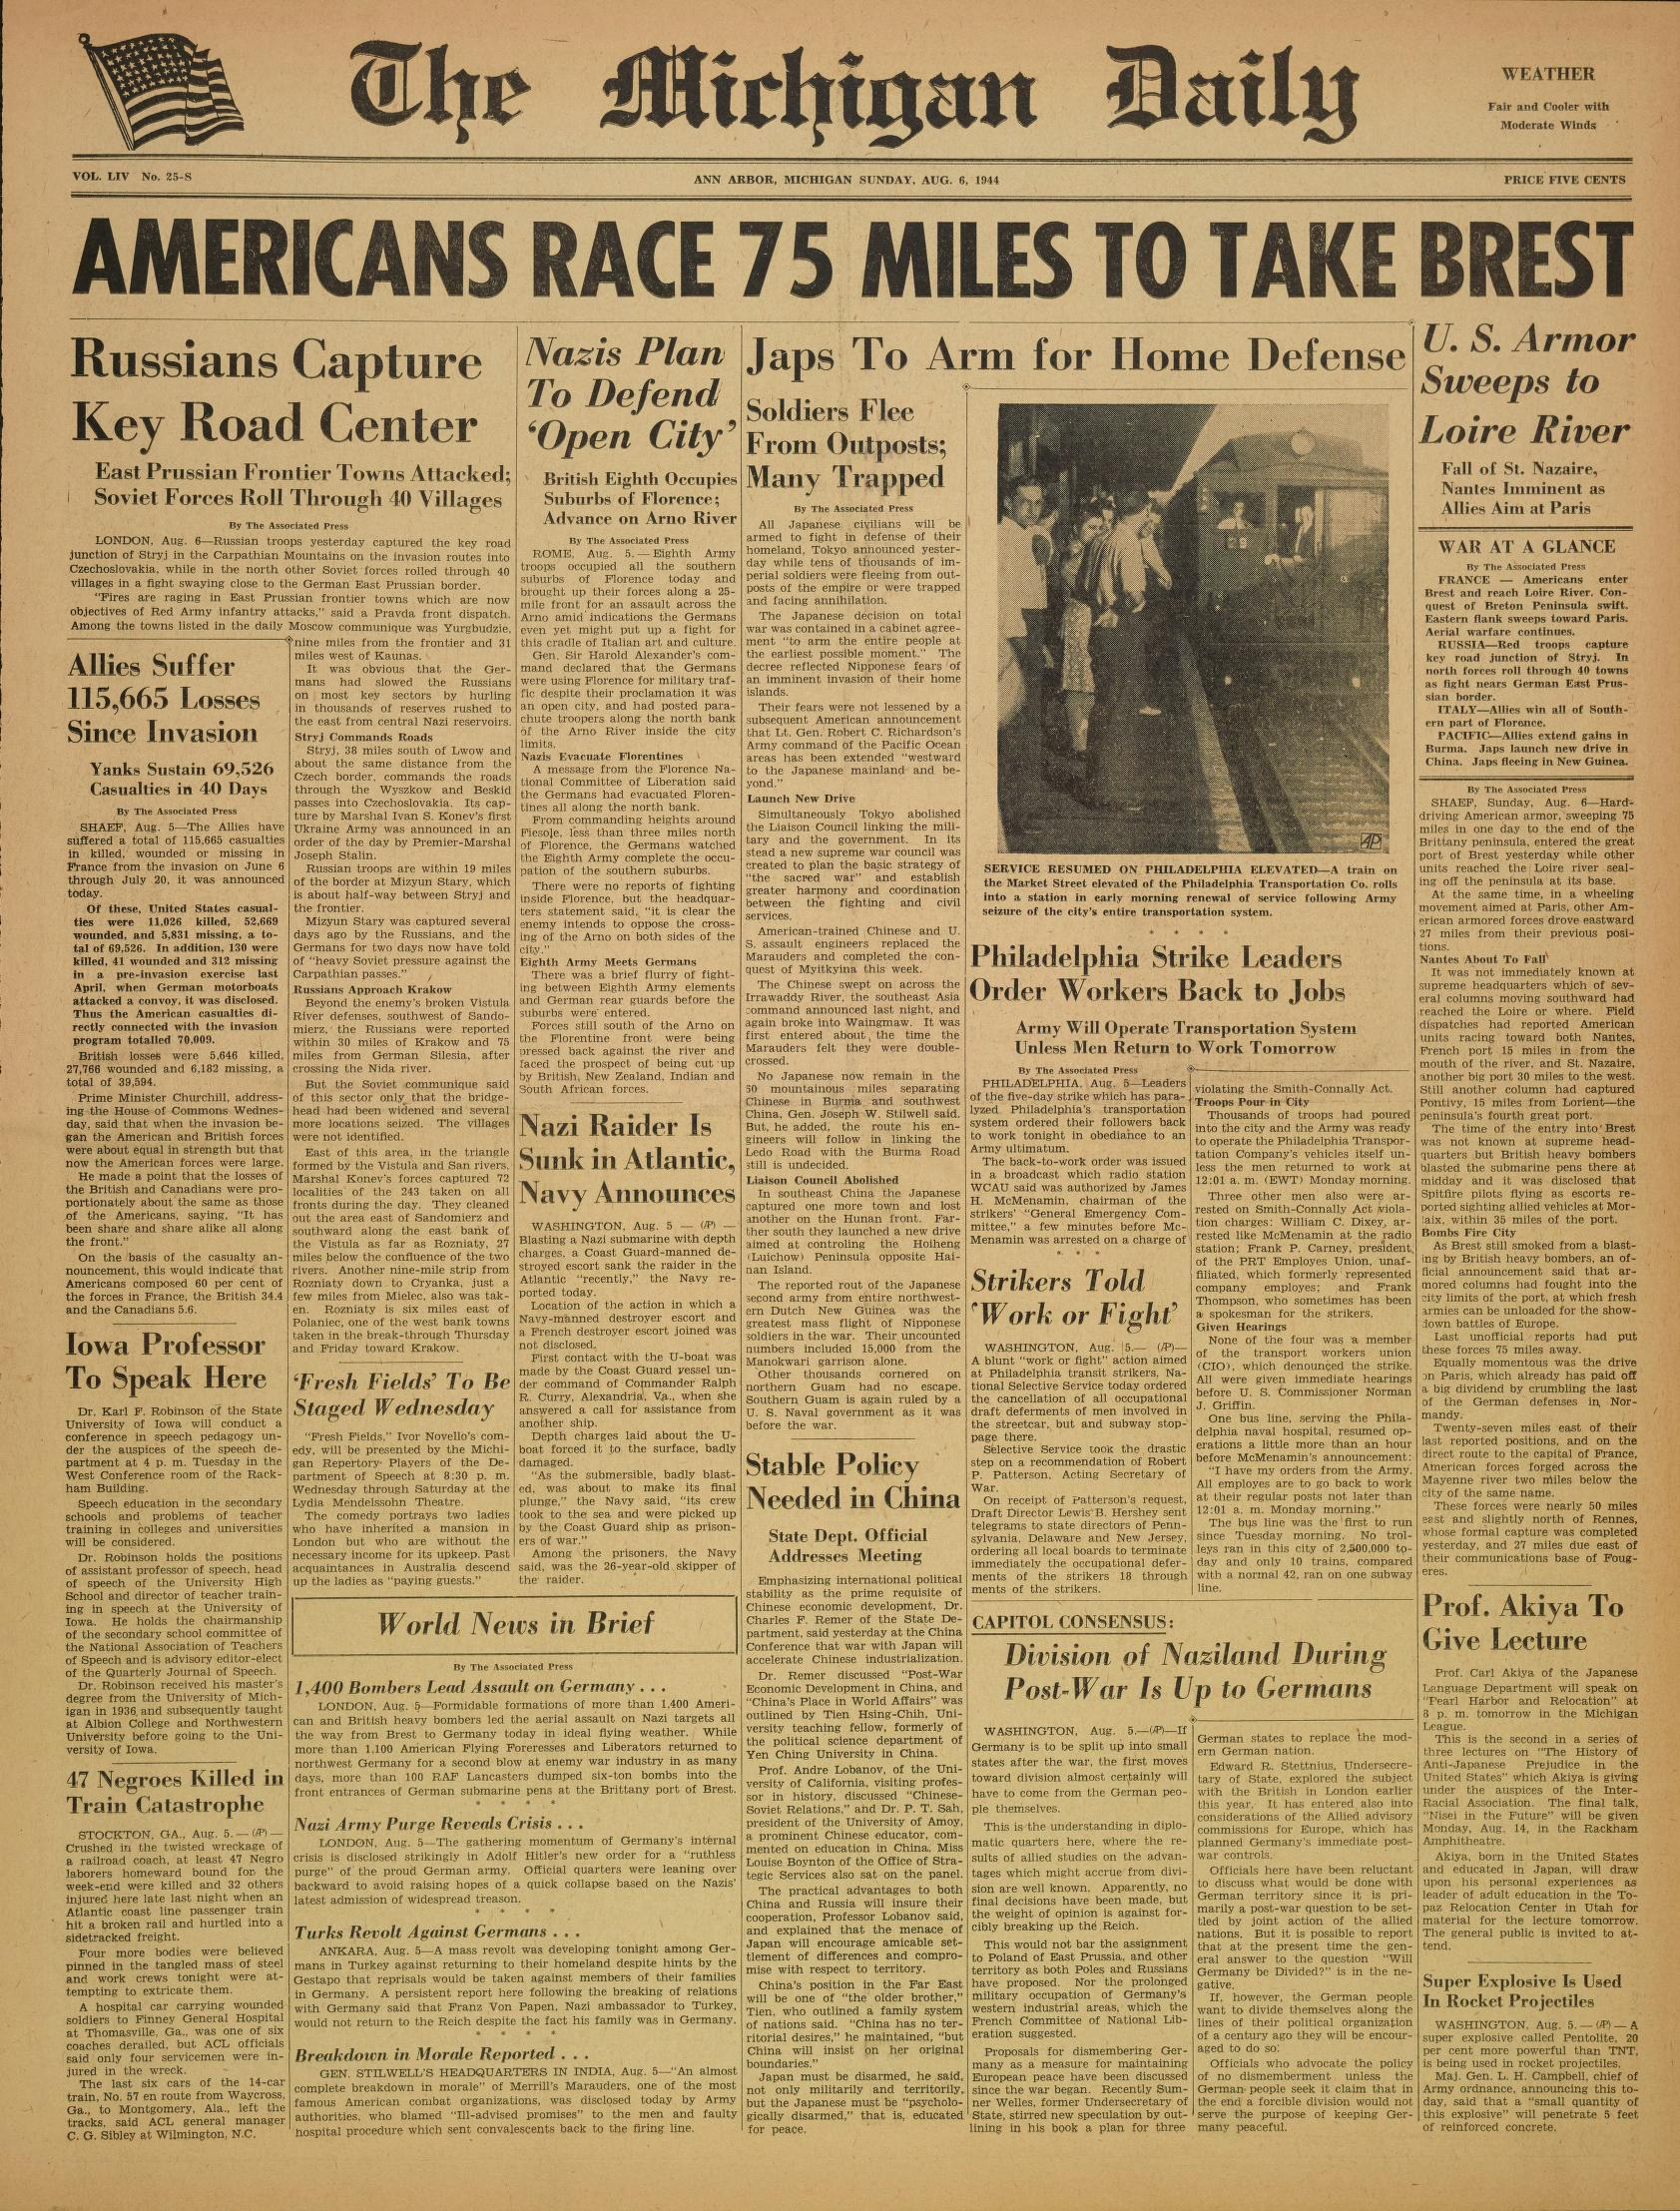 Michigan Daily Digital Archives - August 06, 1944 (vol  54